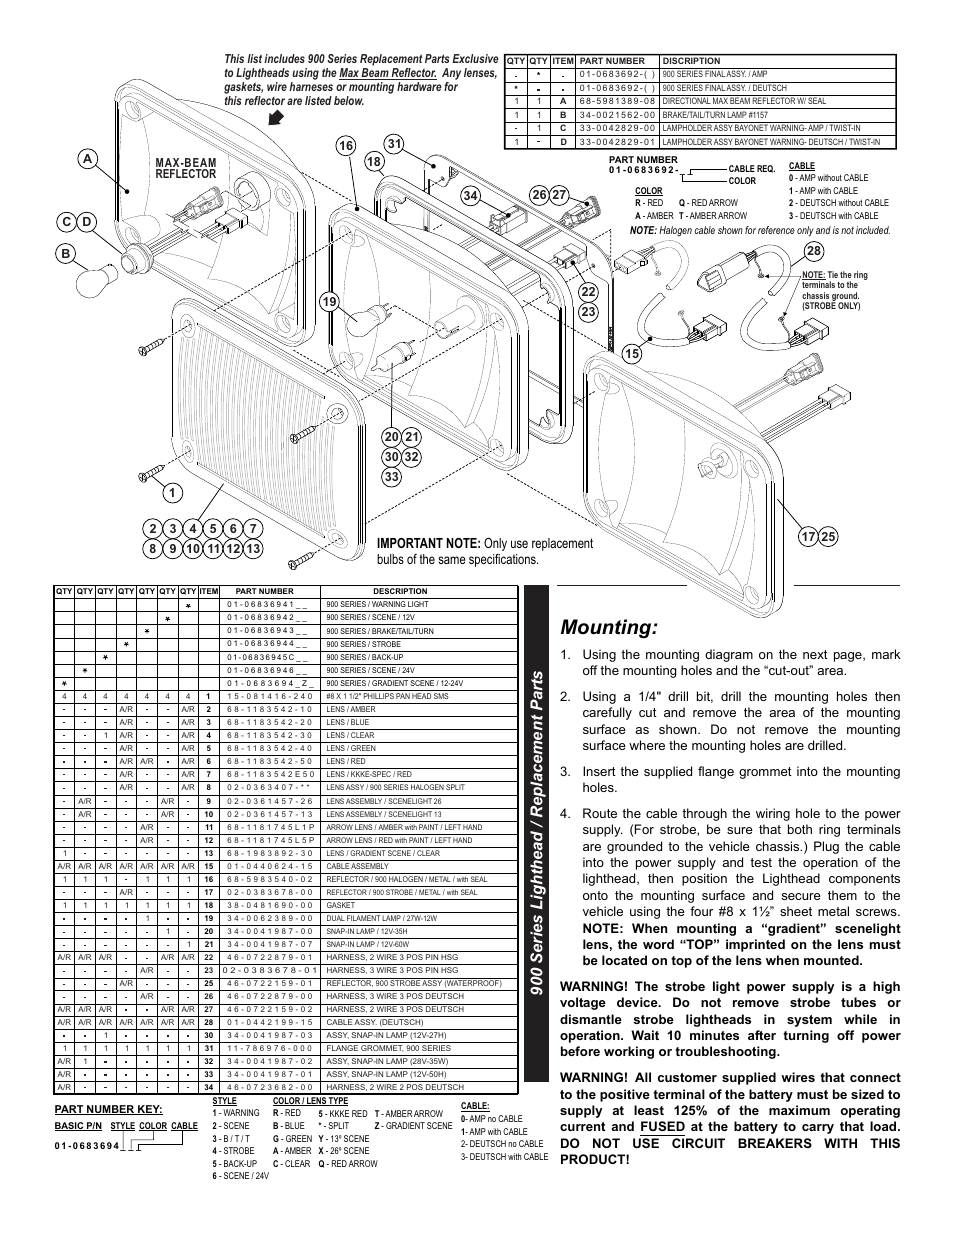 Whelen Parts Diagrams Worksheet And Wiring Diagram Tpac Some Rca Converter Mounting 900 Series Lighthead Replacement Page 2 Rh Manualsdir Com Siren Engineering